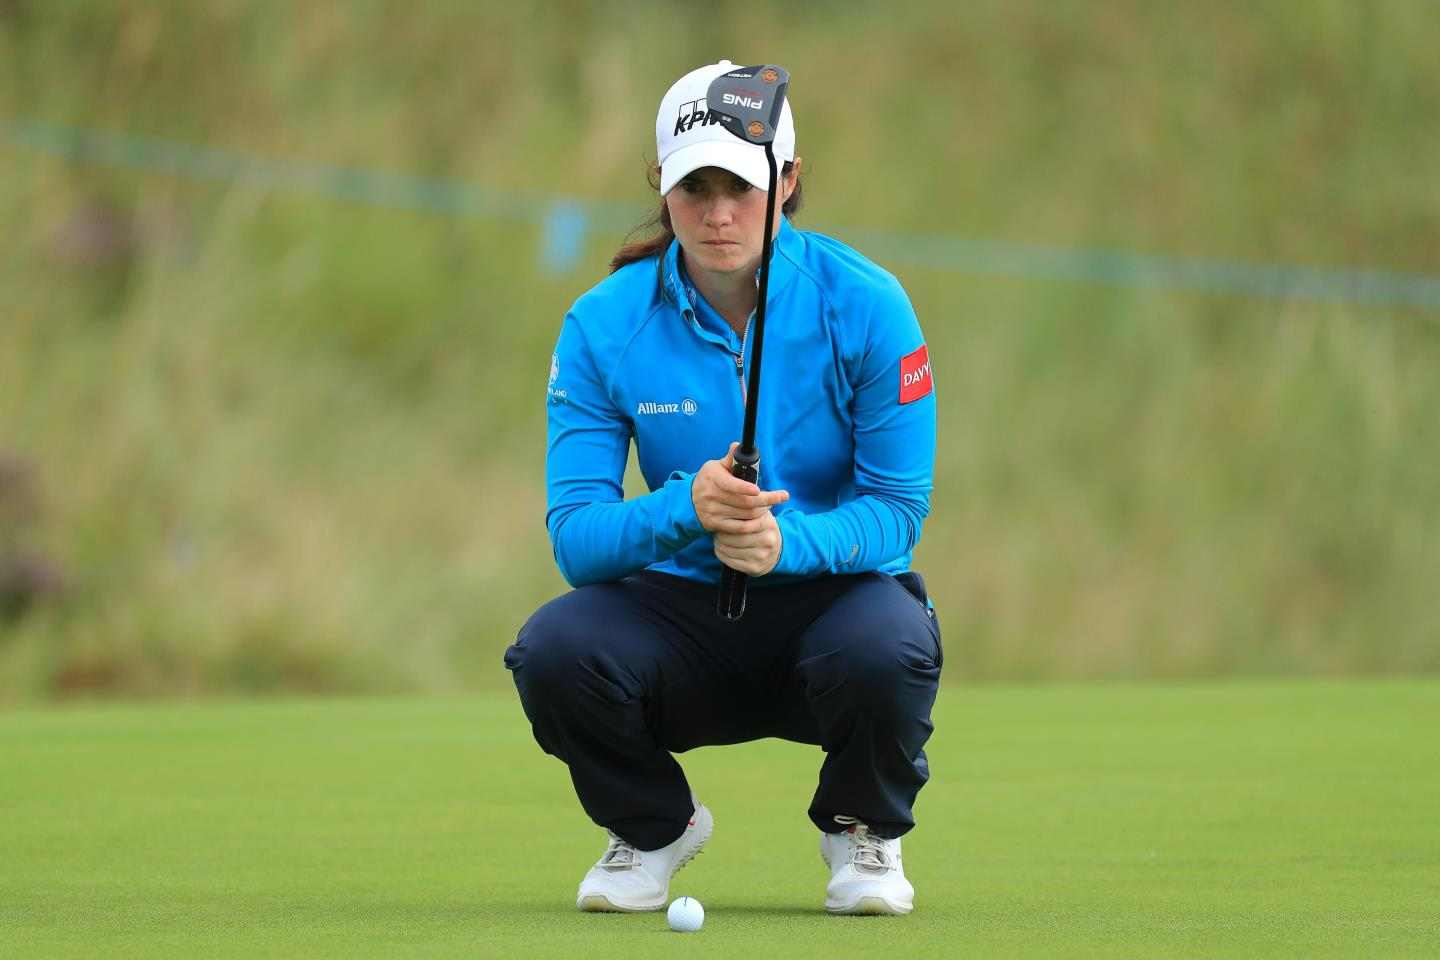 Among the rising stars of women's golf is Leona Maguire